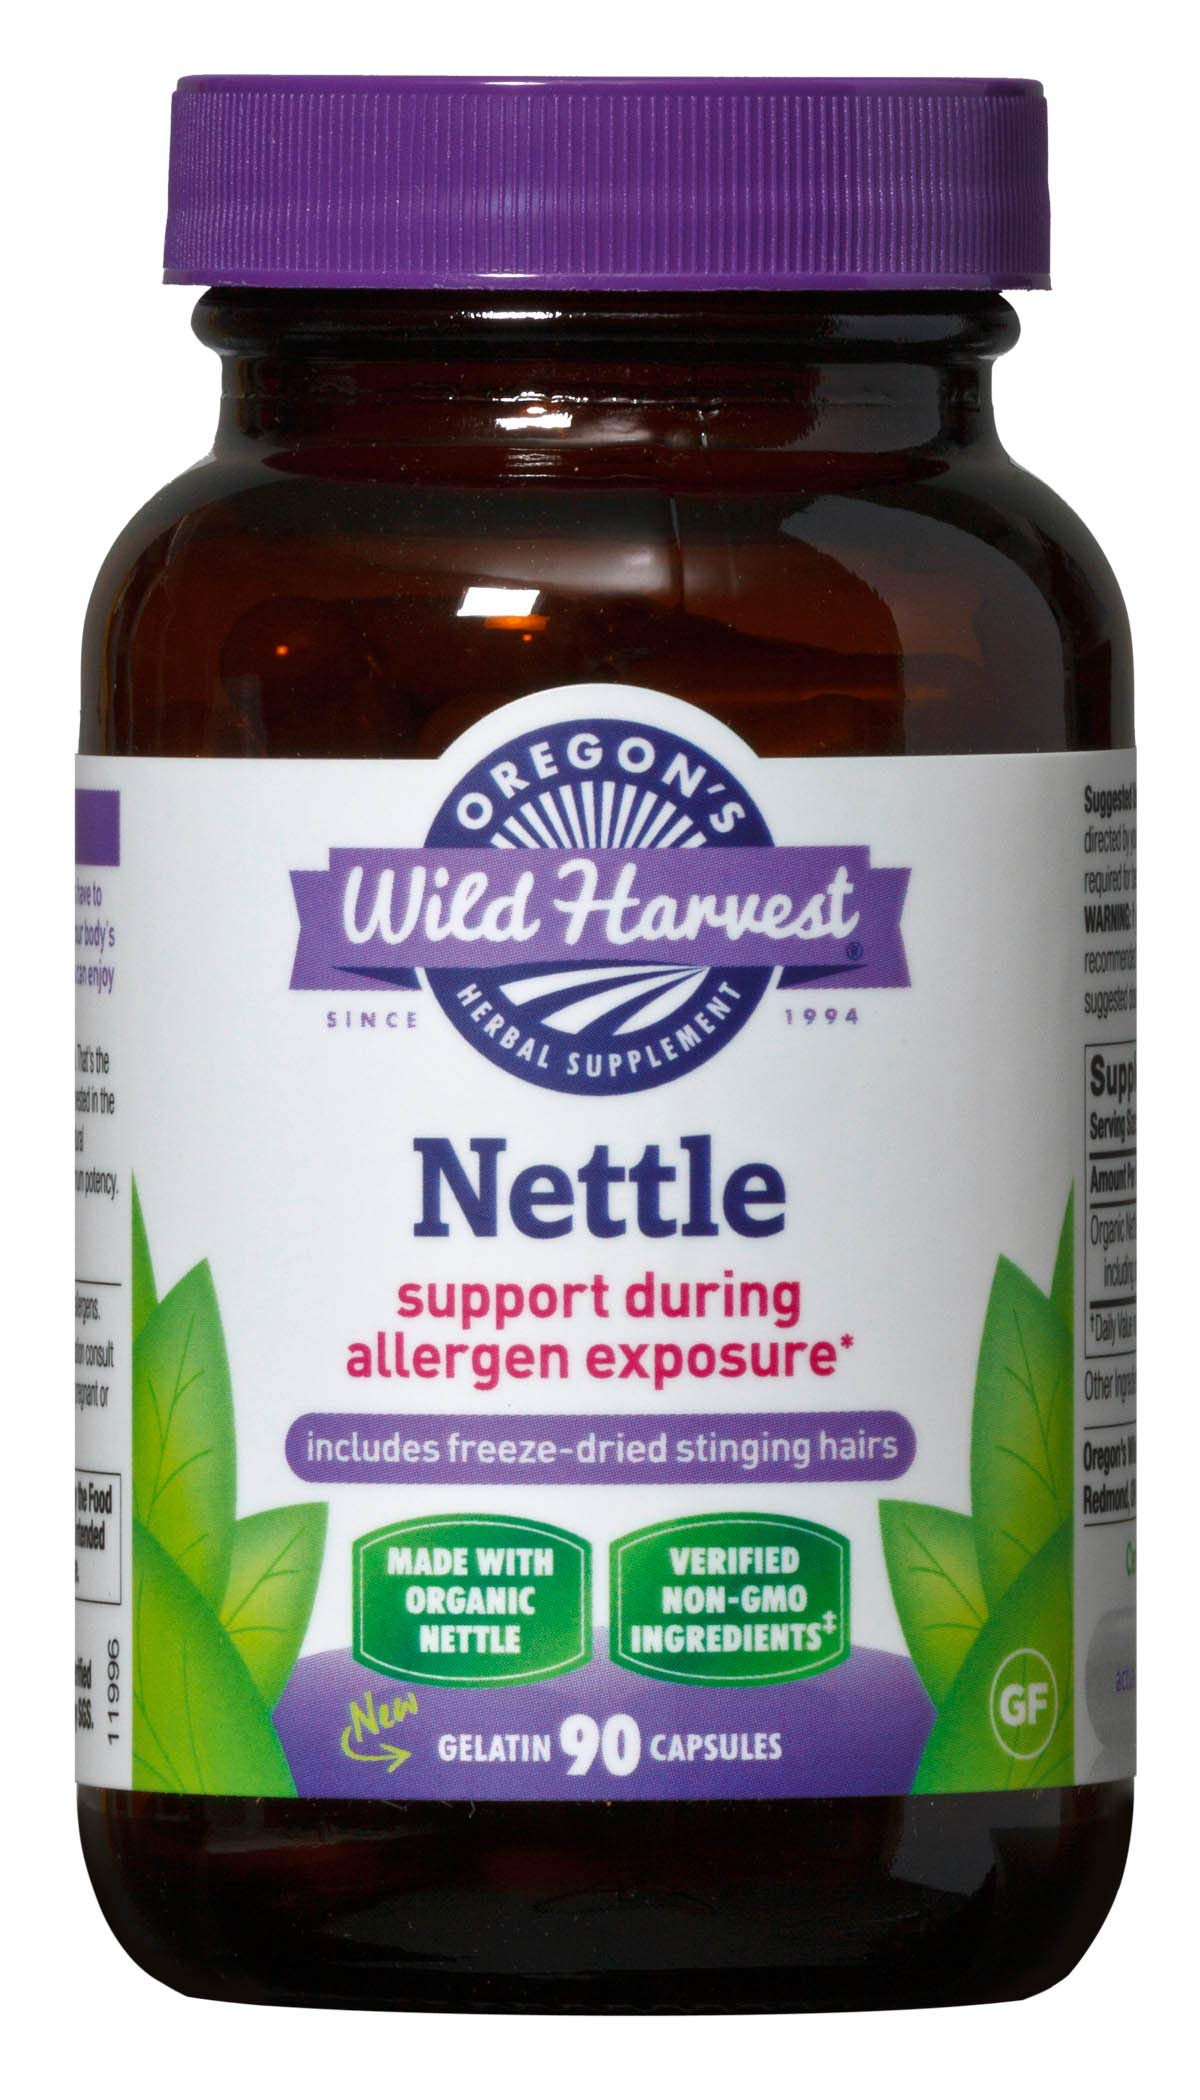 Oregon's Wild Harvest Nettle (F.D.) Capsules, Non-GMO  Herbal Supplements (Packaging May Vary), 90 Count